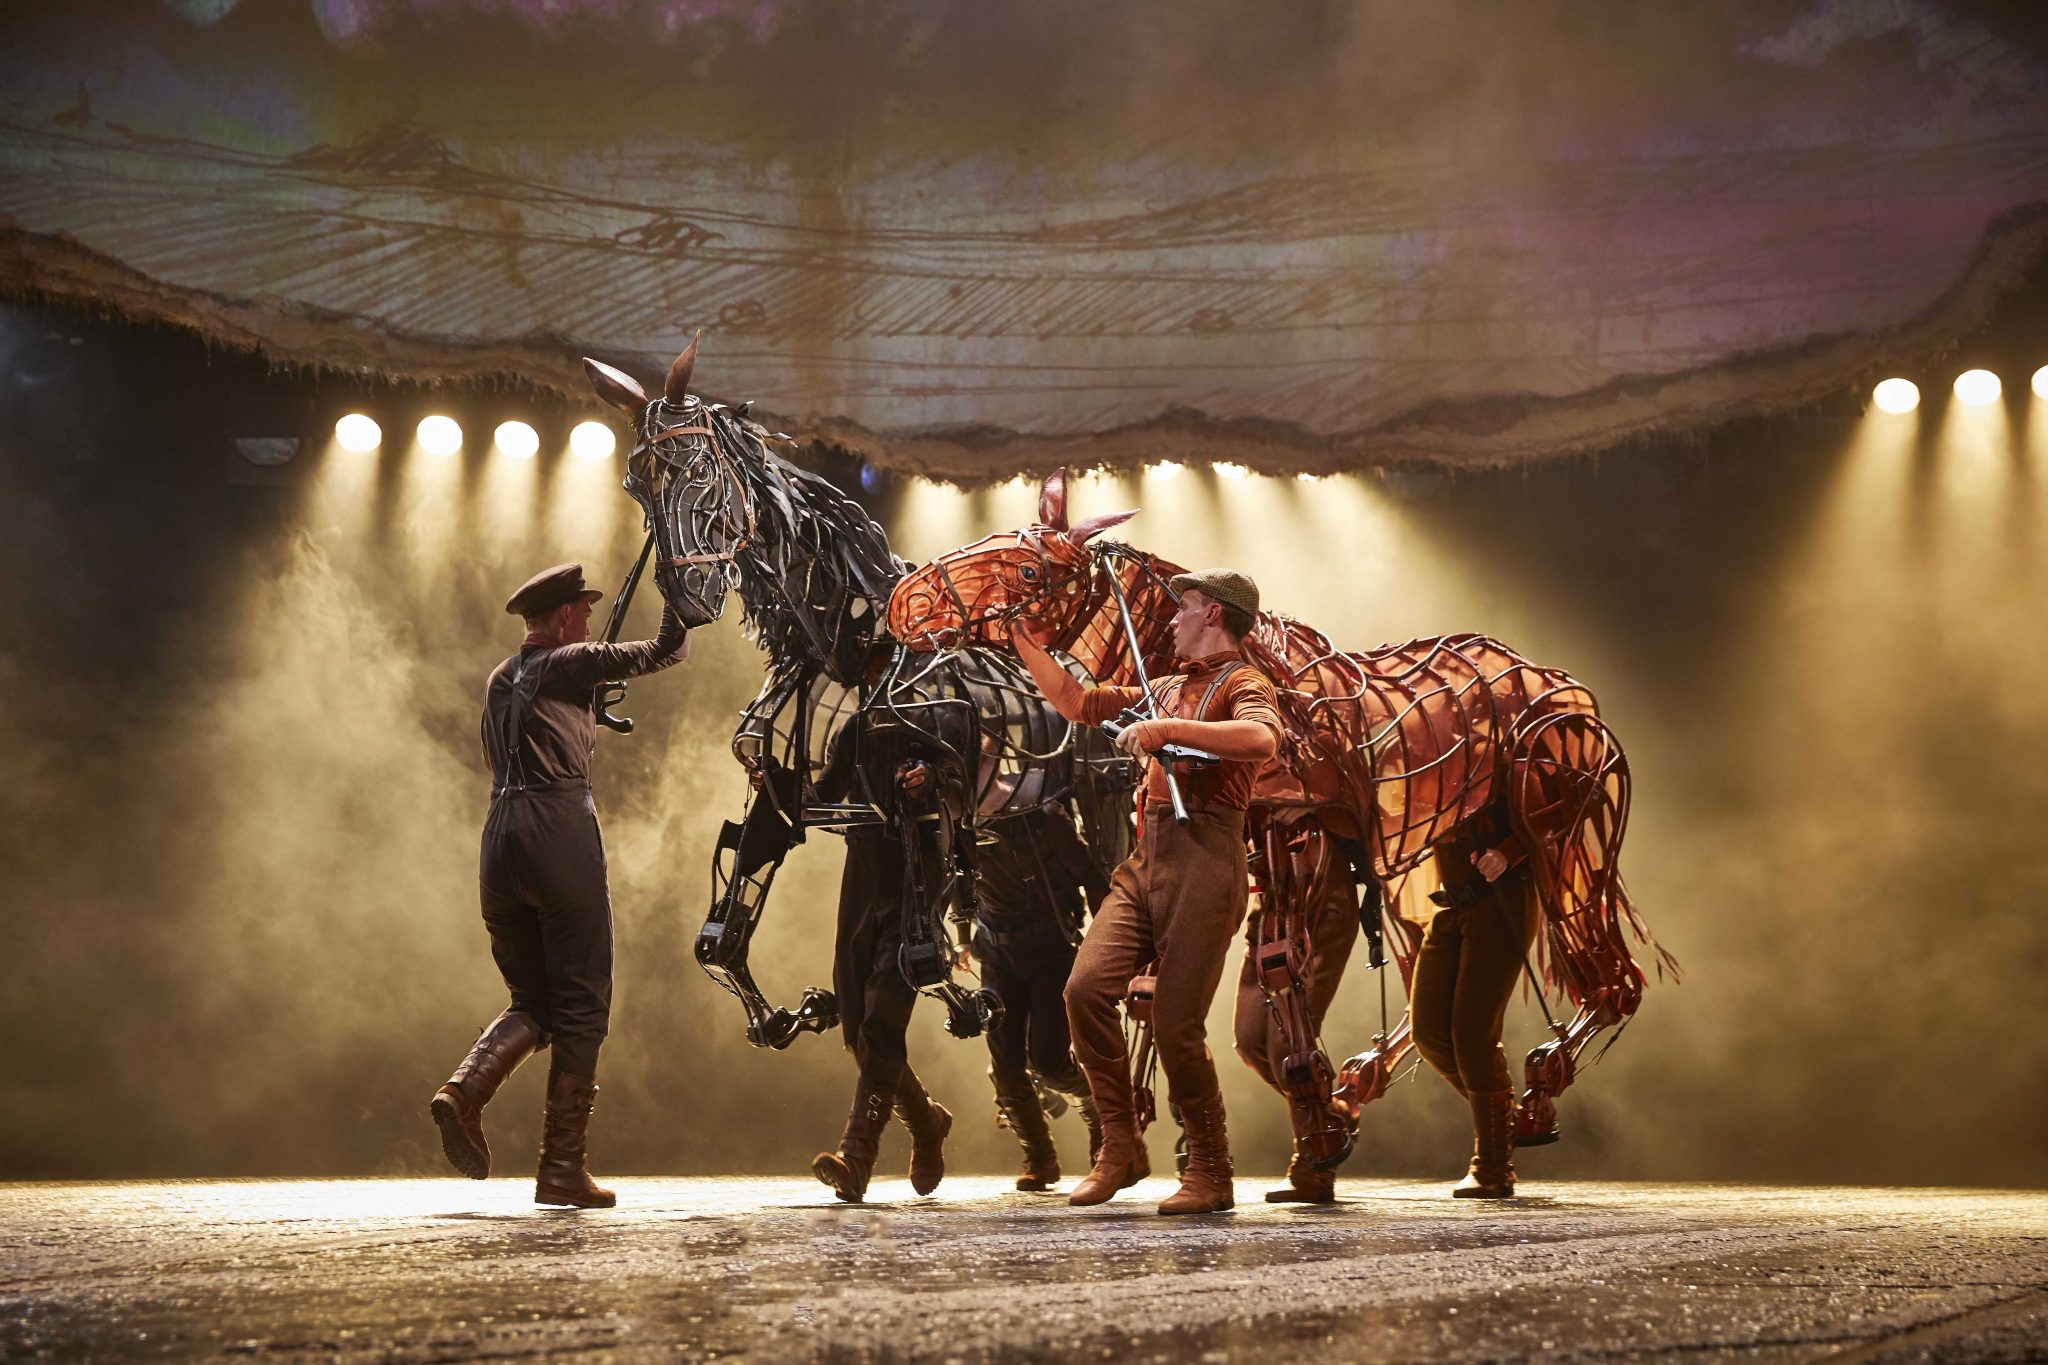 'The biggest, most challenging and most rewarding acting job I've had yet': Kiran Landa on The National Theatre's War Horse